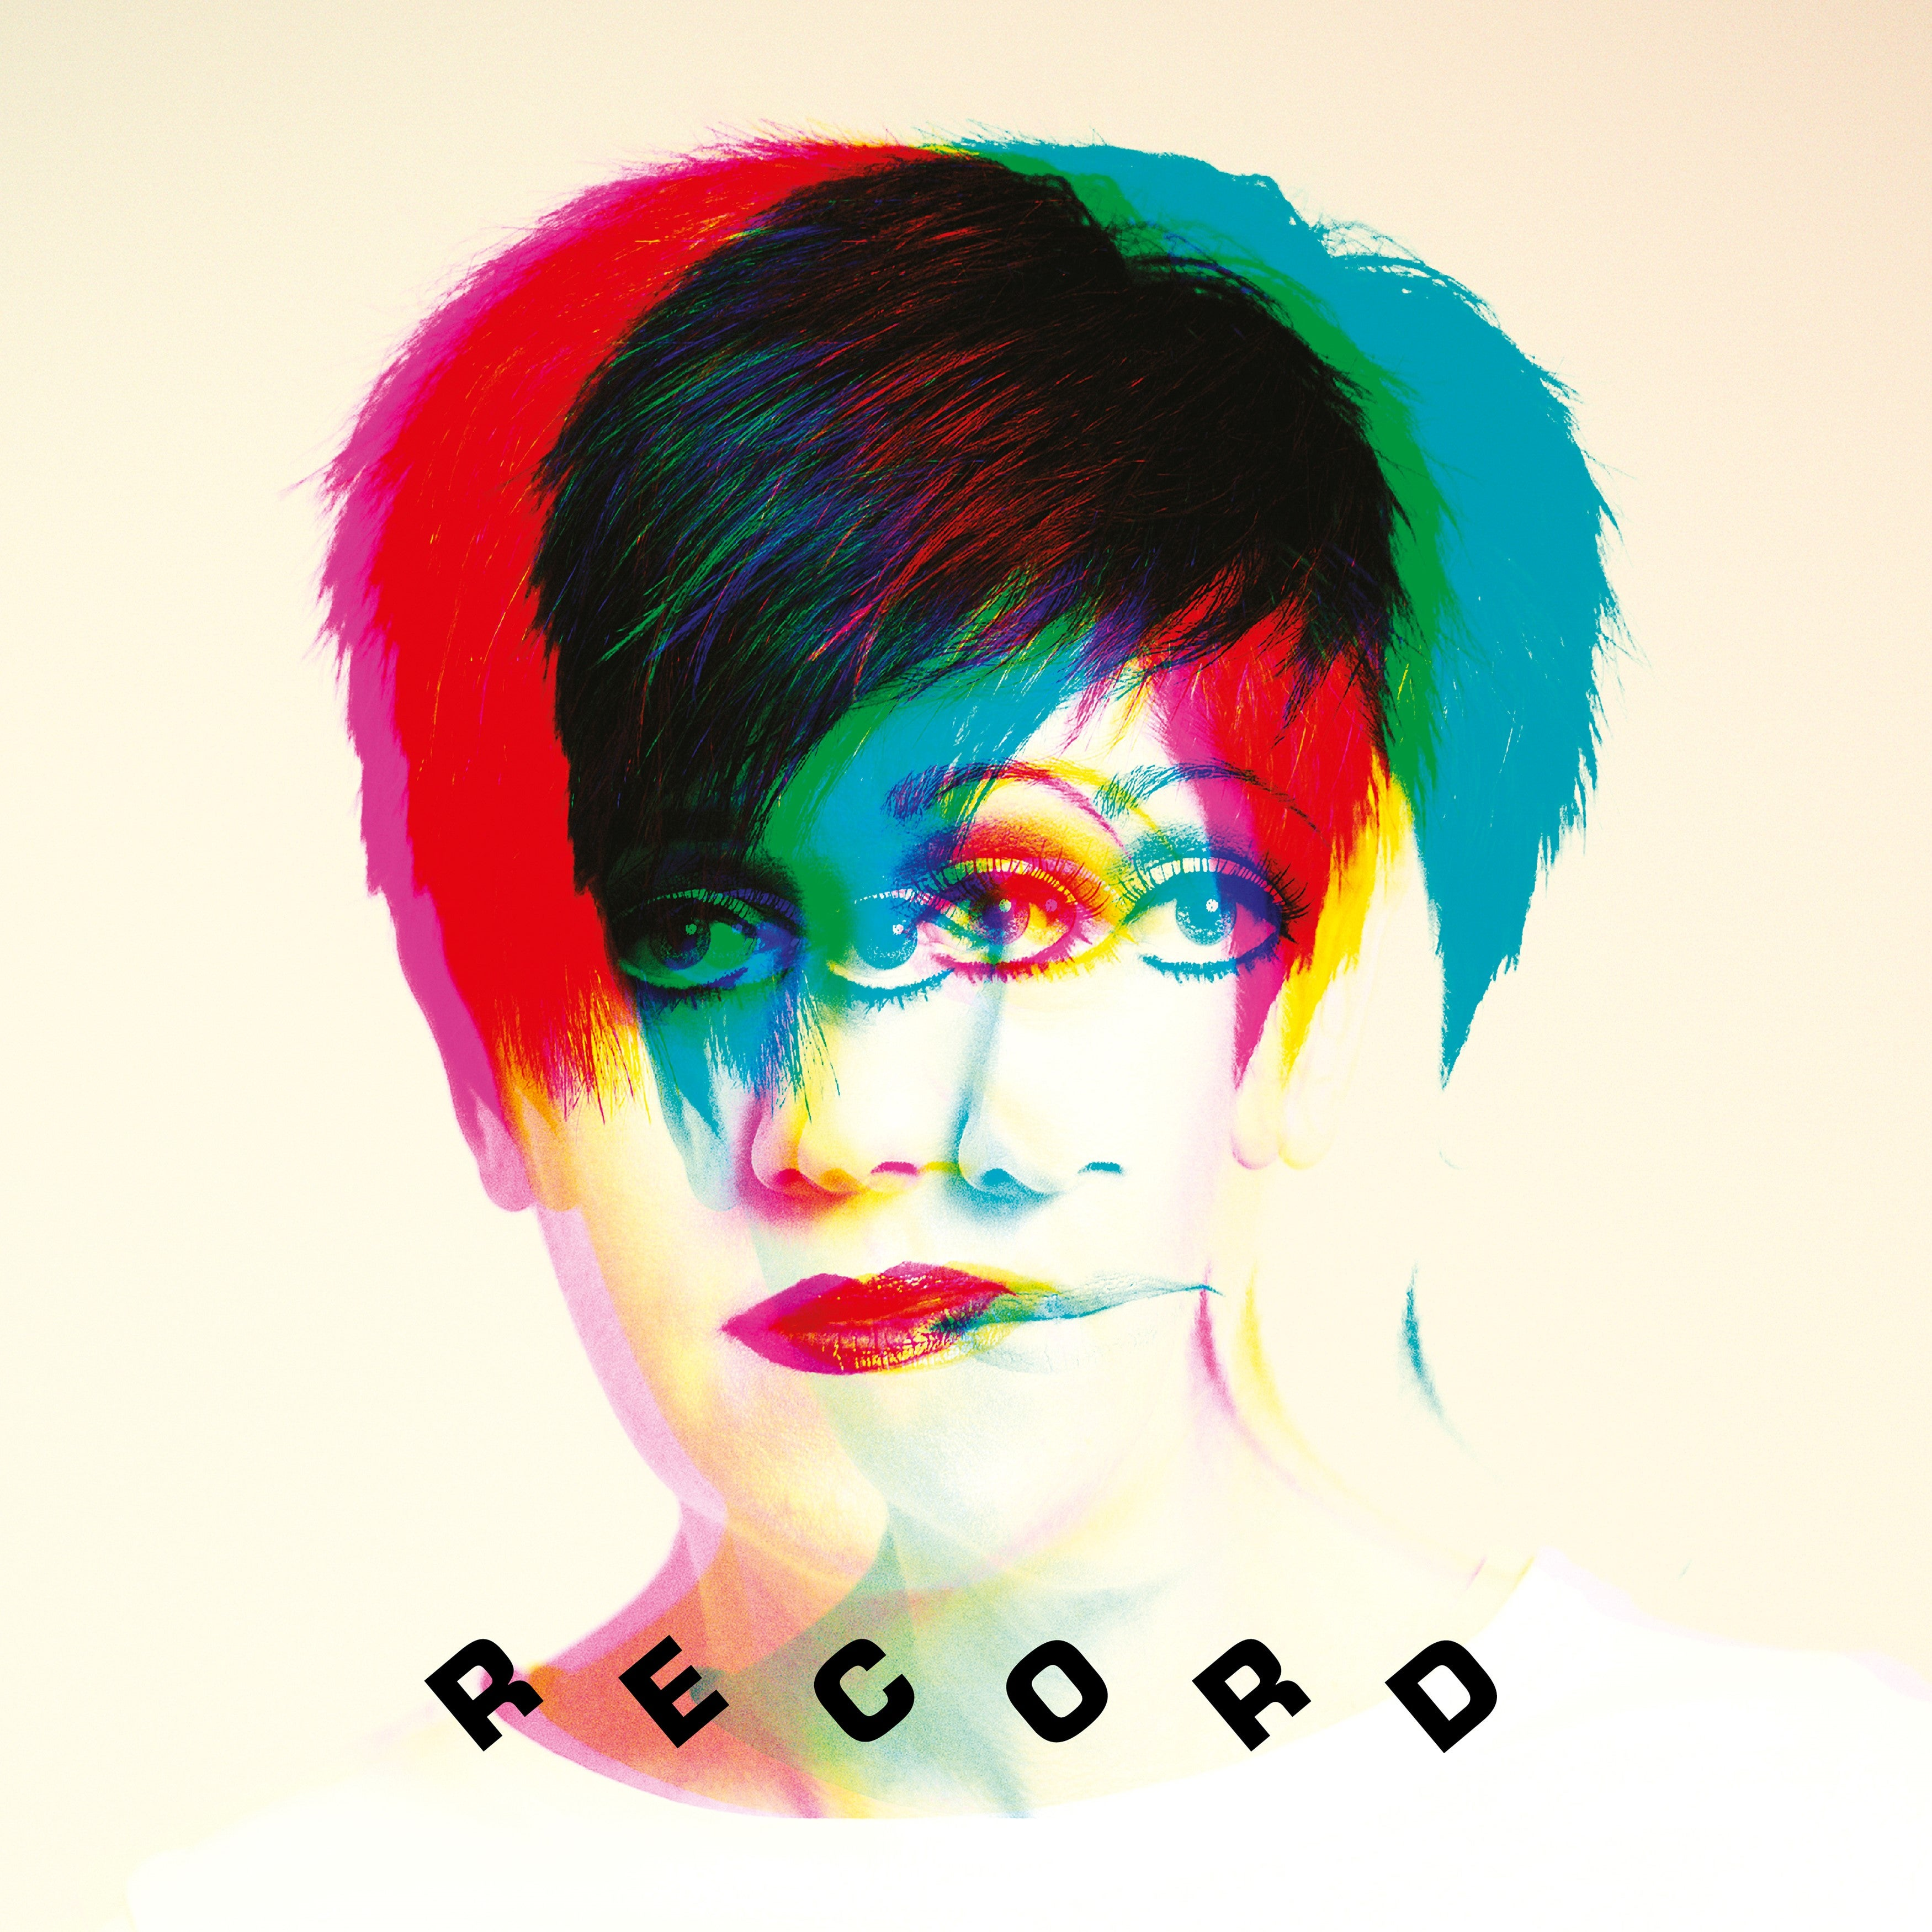 The cover for Tracey Thorn's Record.